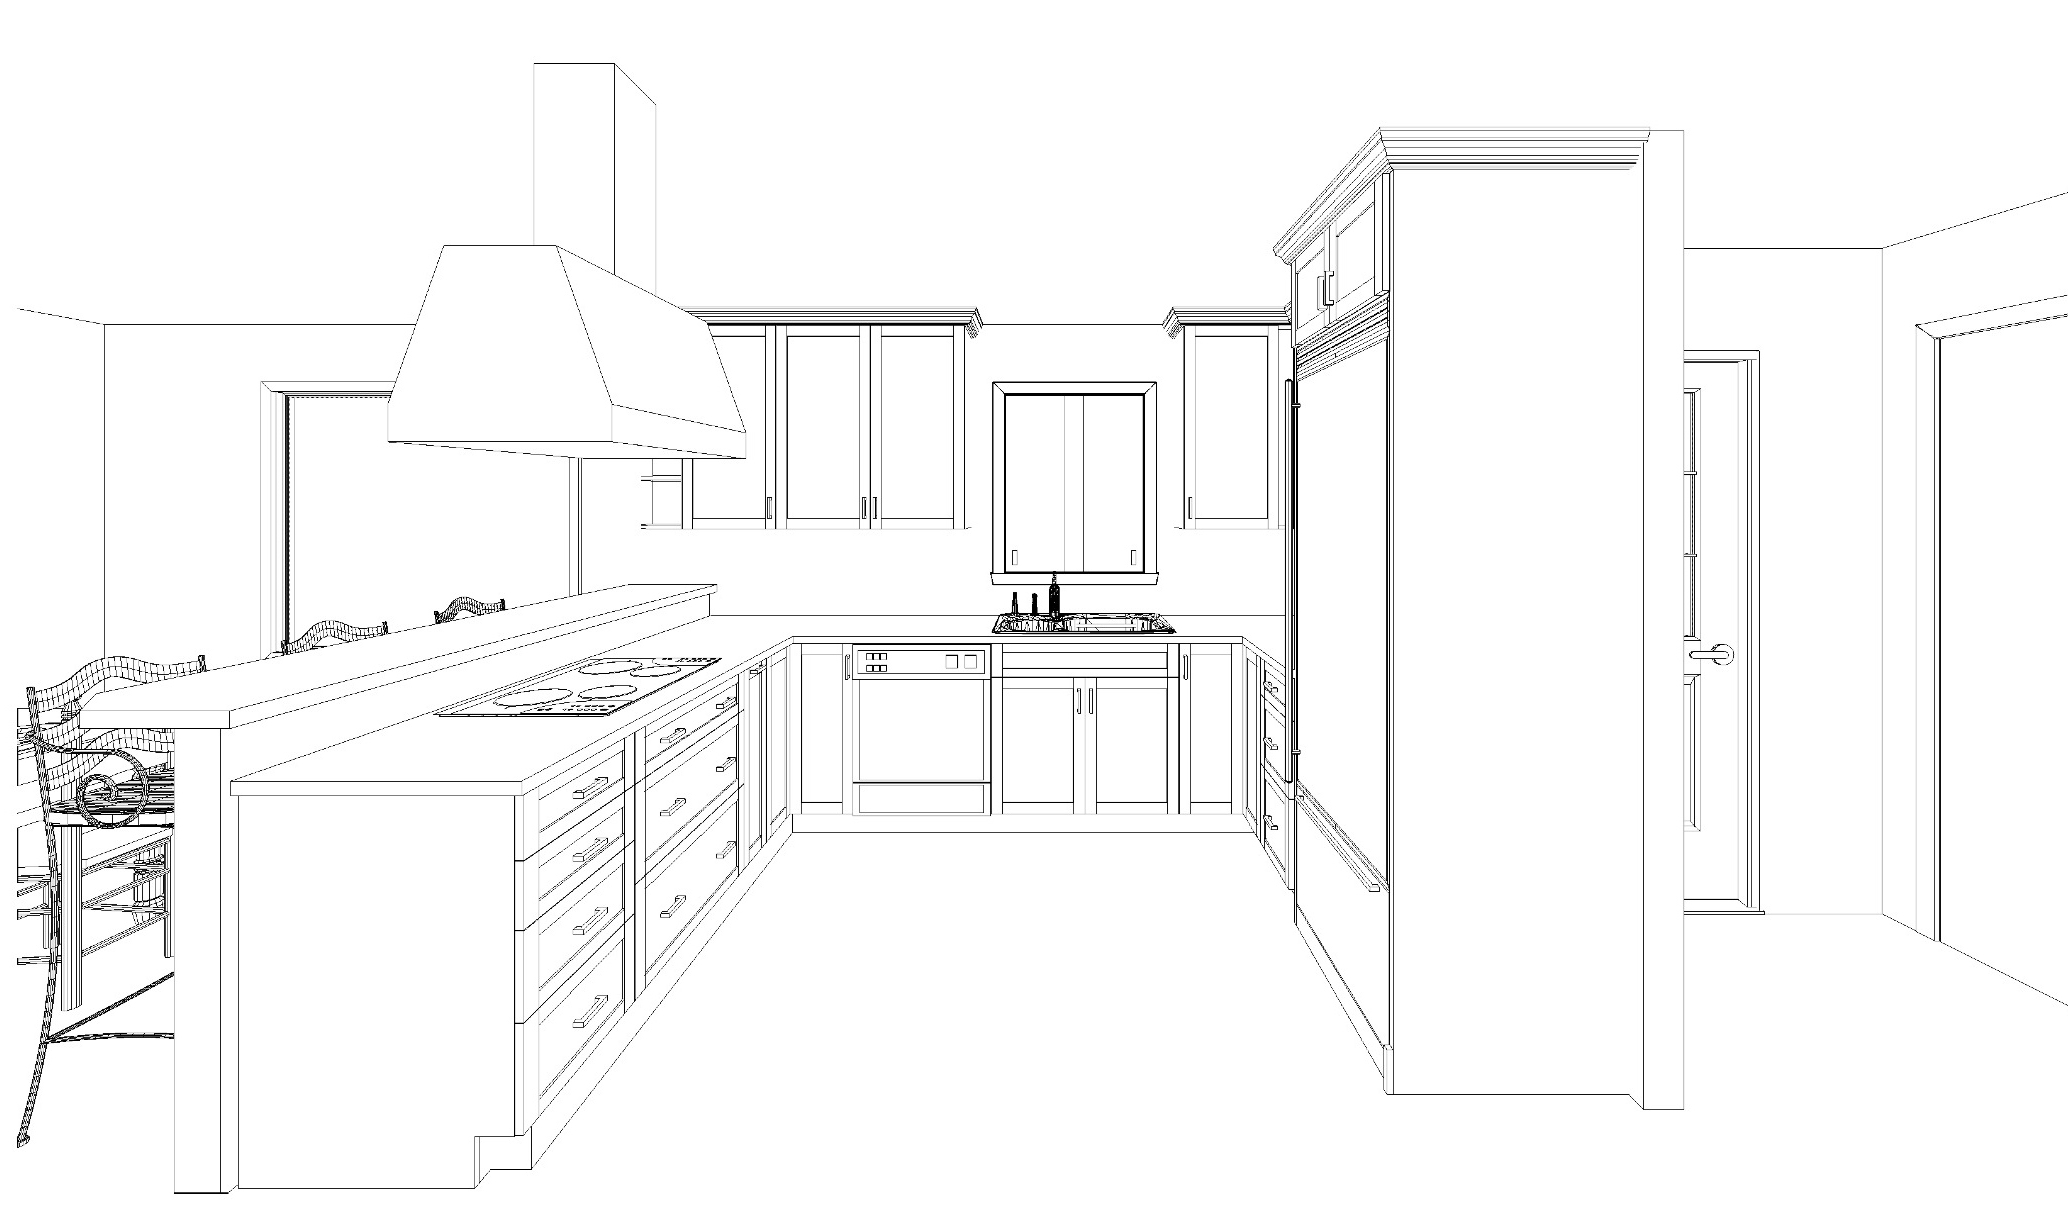 Kitchen Architecture Design Ideas Plan Contemporary Archicad Autocad Drawing Landscape Inspiration Kitchen How To Design Kitchen Layout From Blah Into Fantastic (Image 21 of 38)